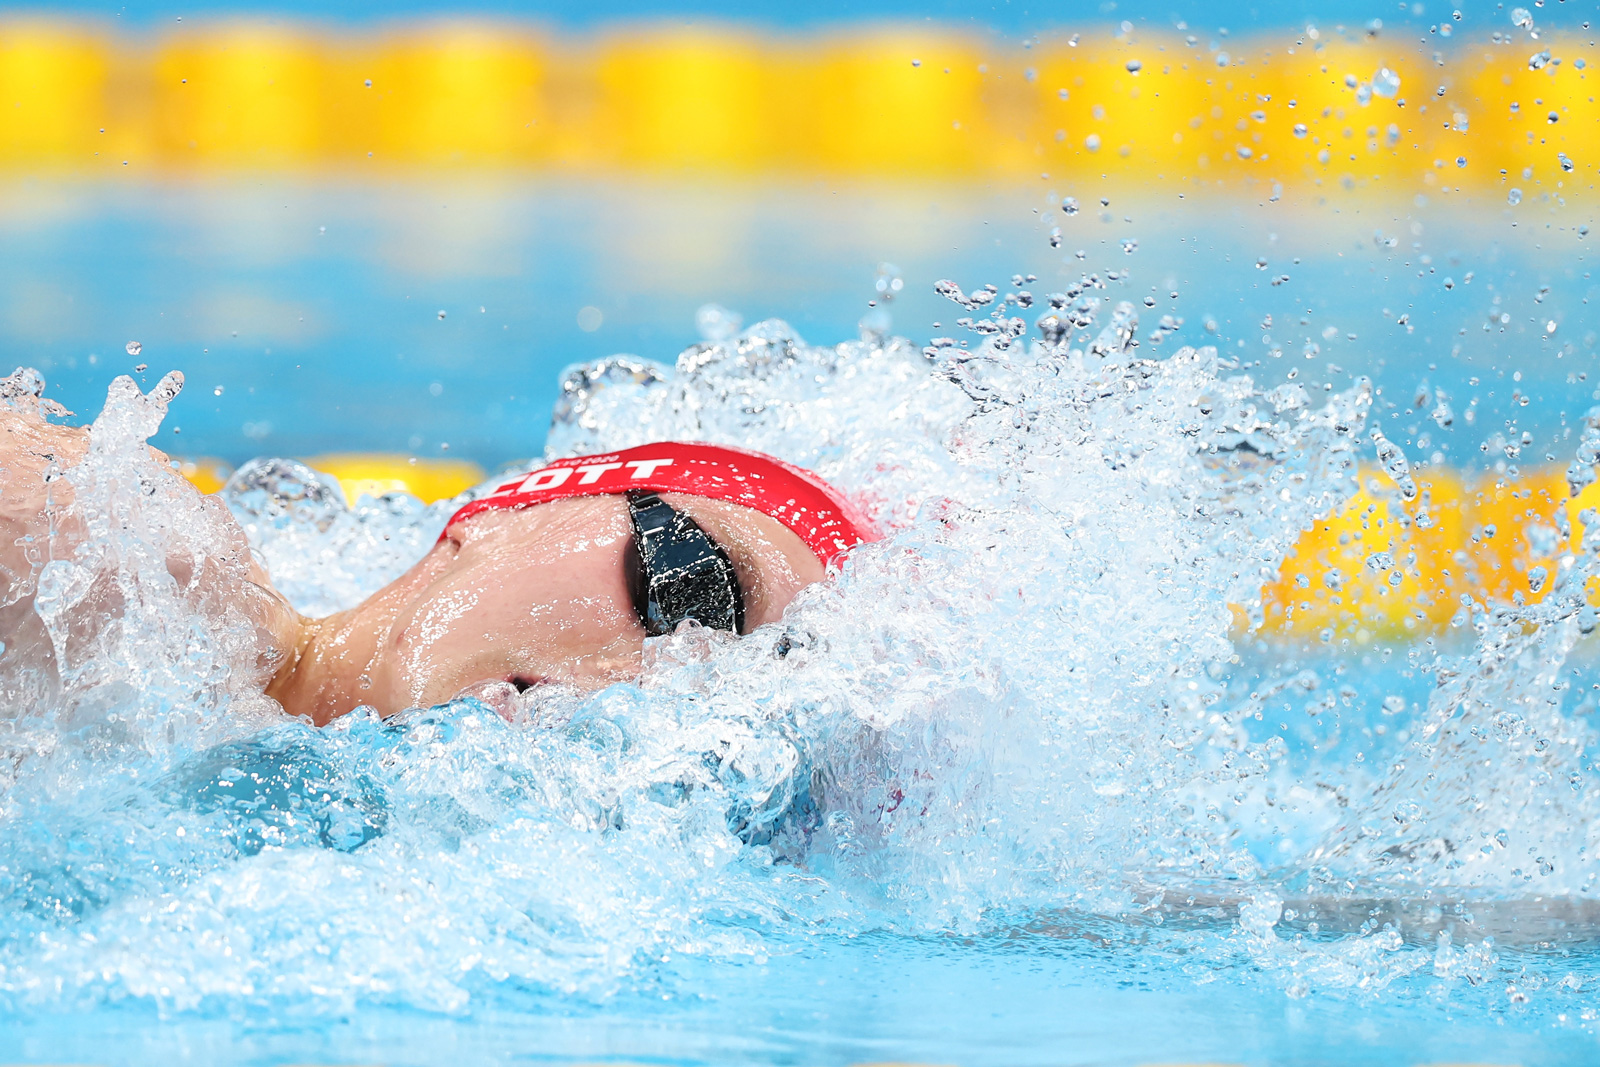 Duncan Scott of Team Great Britain competes in the Freestyle Relay final on July 28.